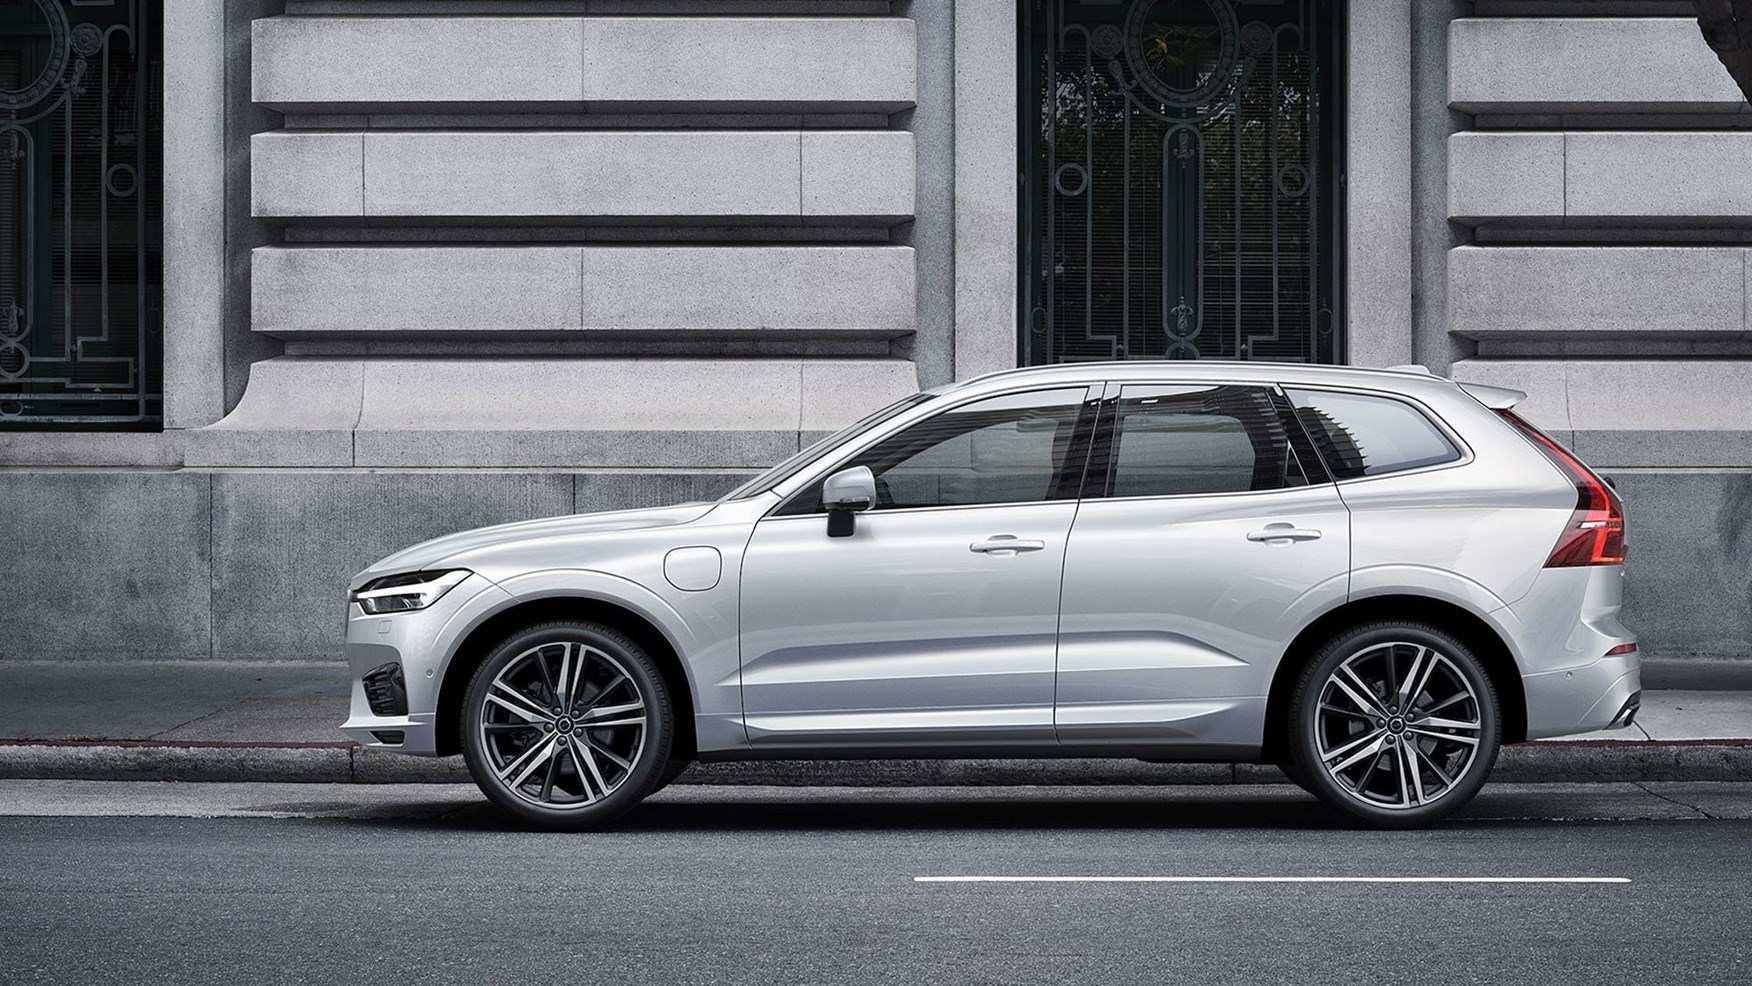 22 Best Review Volkswagen Hybrid 2019 Performance And New Engine Specs by Volkswagen Hybrid 2019 Performance And New Engine